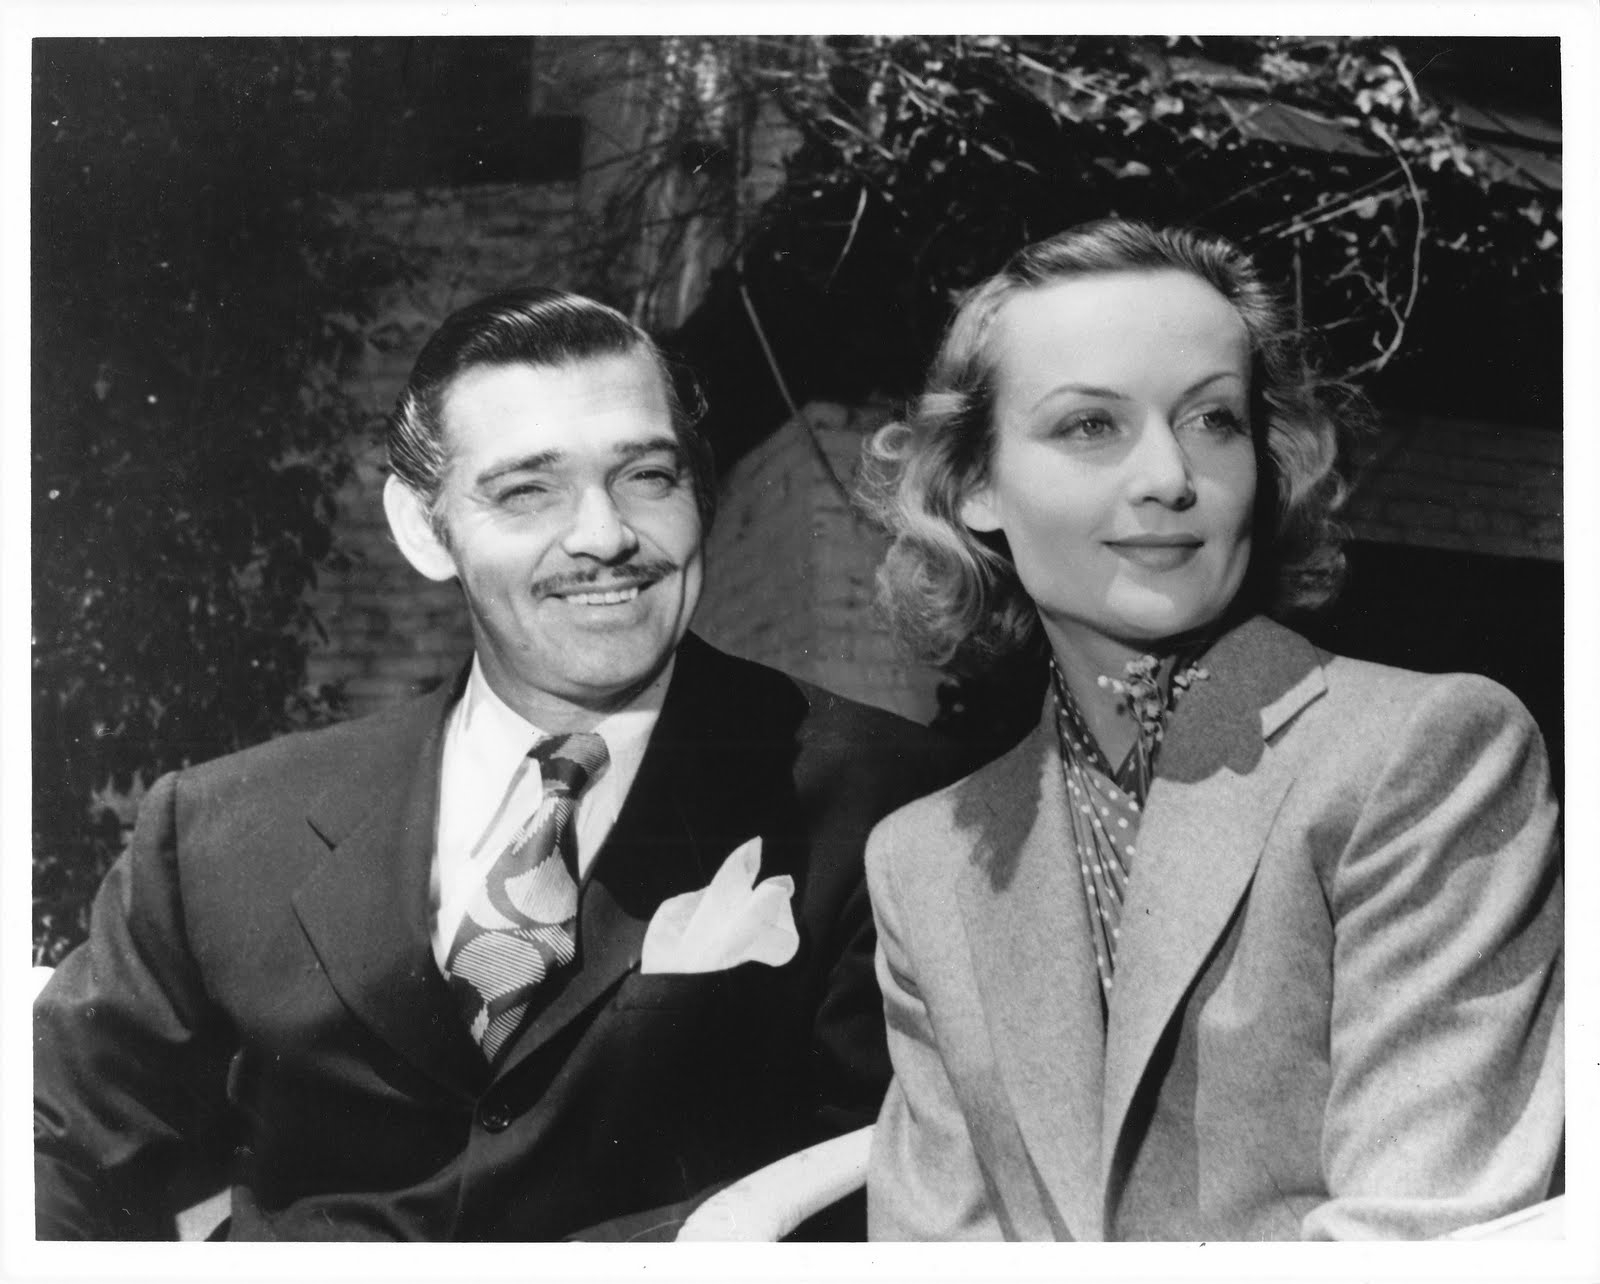 Martin Grams: Carole Lombard and the Mystery of Flight 3